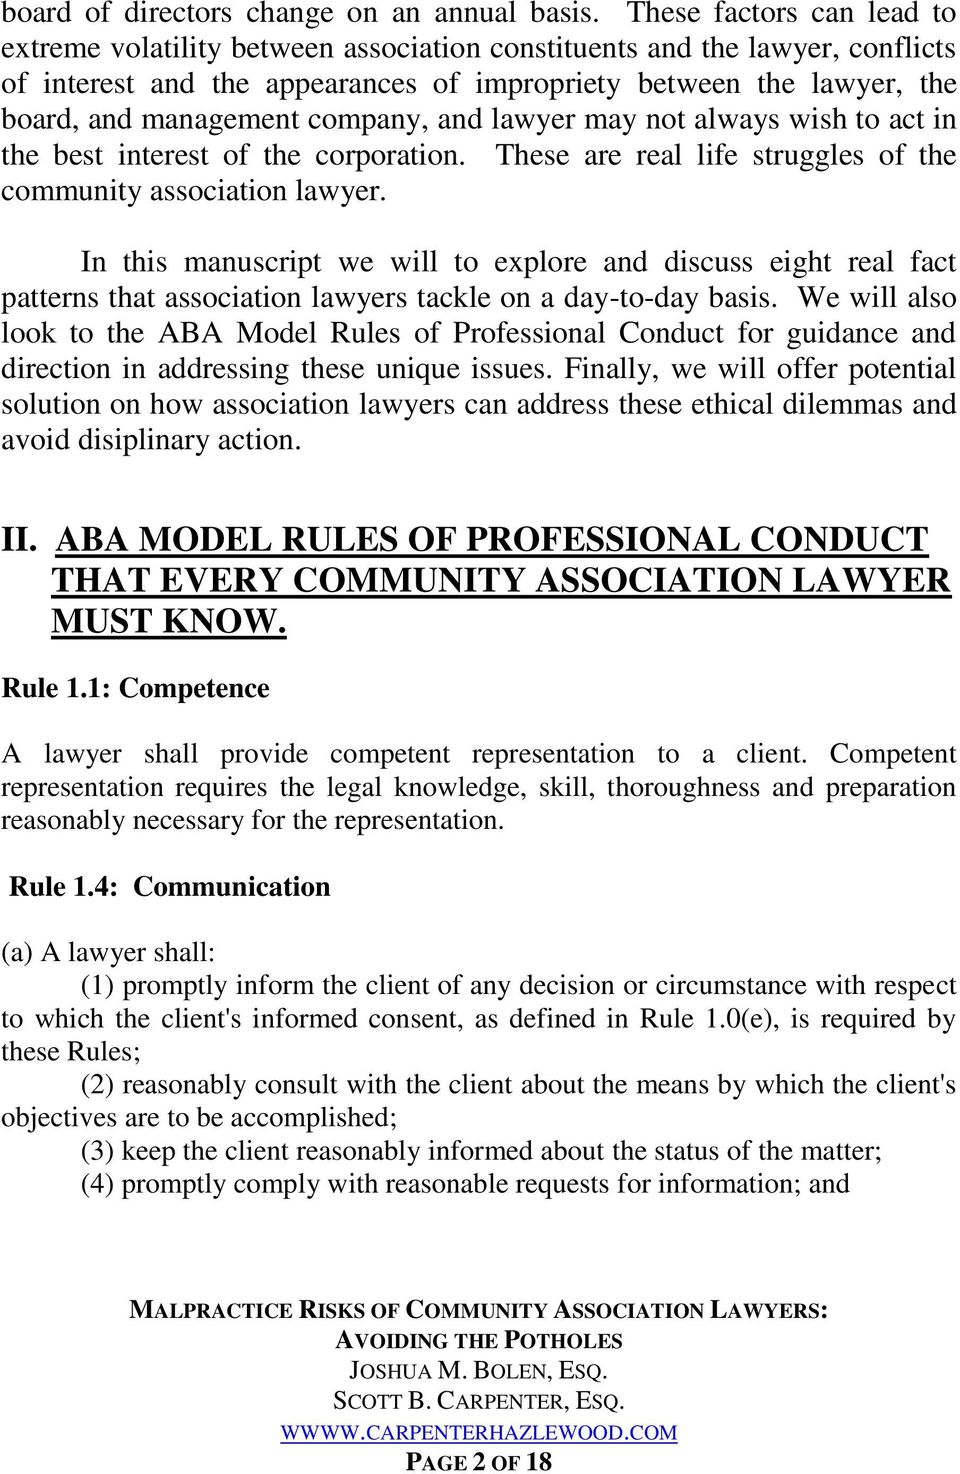 company, and lawyer may not always wish to act in the best interest of the corporation. These are real life struggles of the community association lawyer.